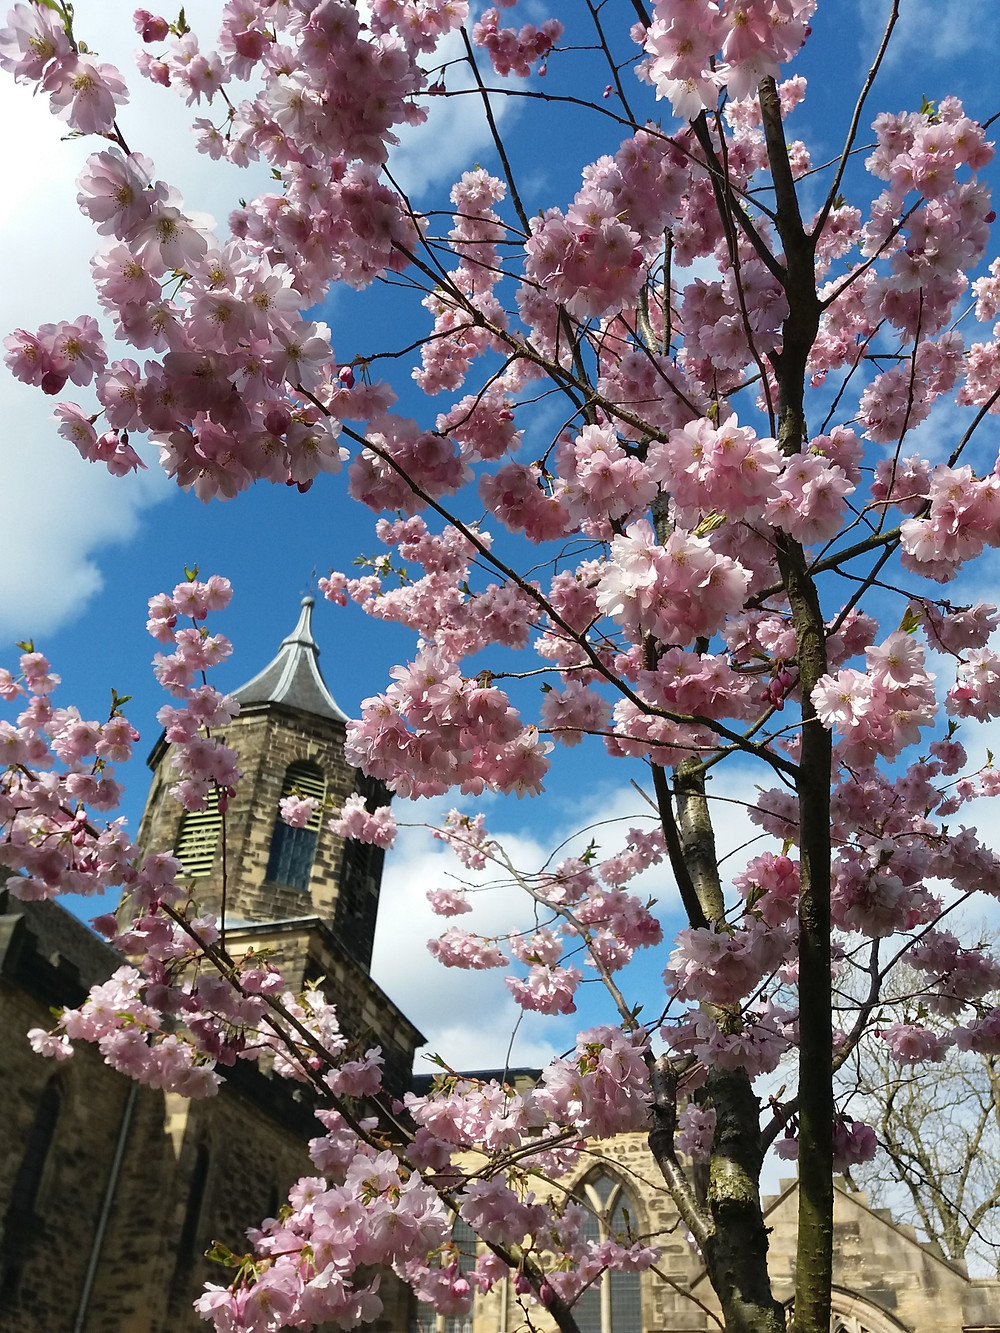 Portrait of cherry blossom tree with Falkirk Trinity Church behind it.